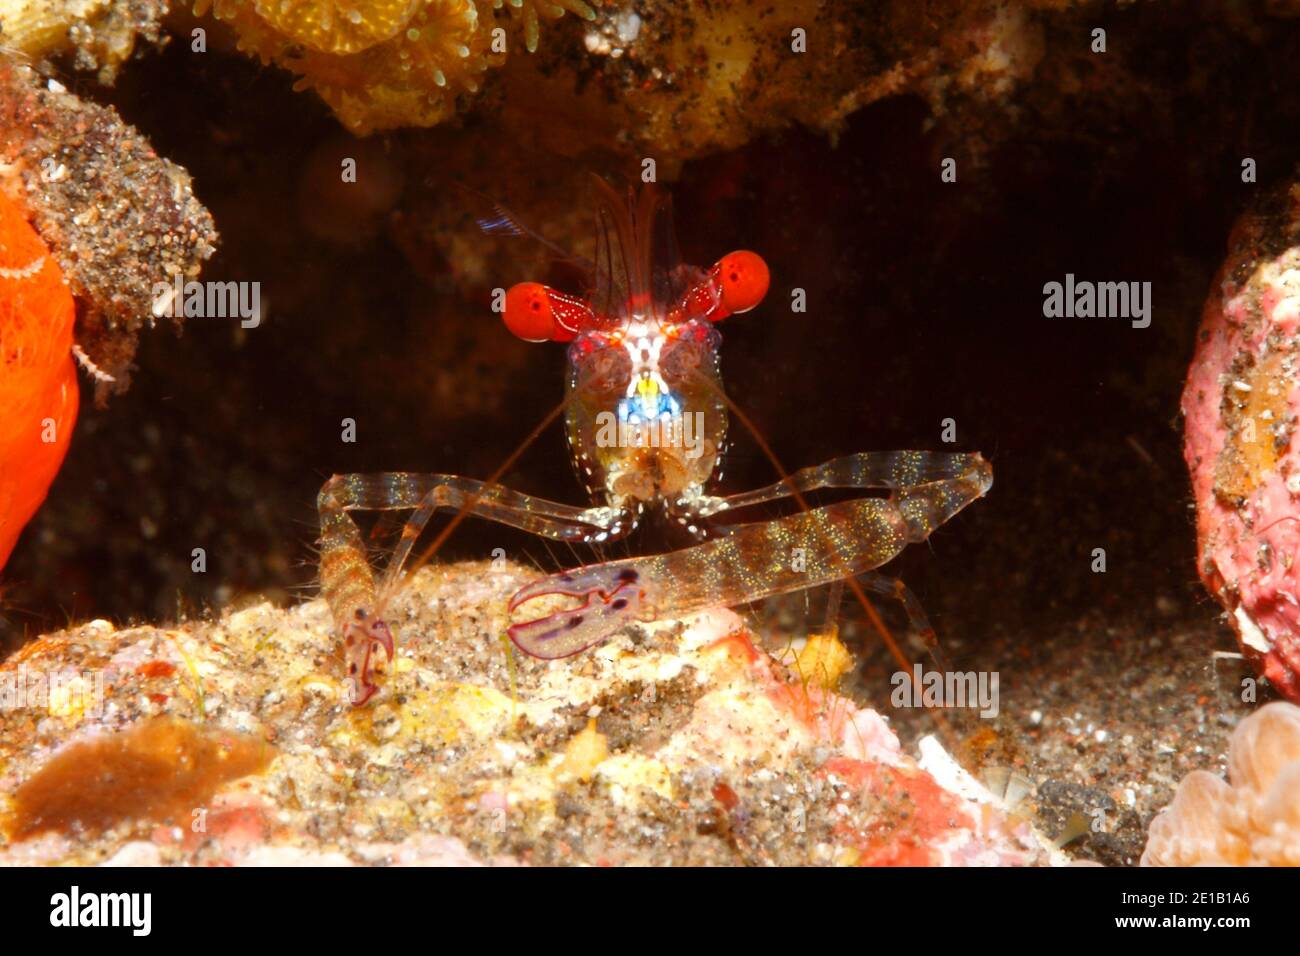 red-eye-shrimp-exoclimenella-maldivensis-tulamben-bali-indonesia-bali-sea-indian-ocean-2E1B1A6.jpg